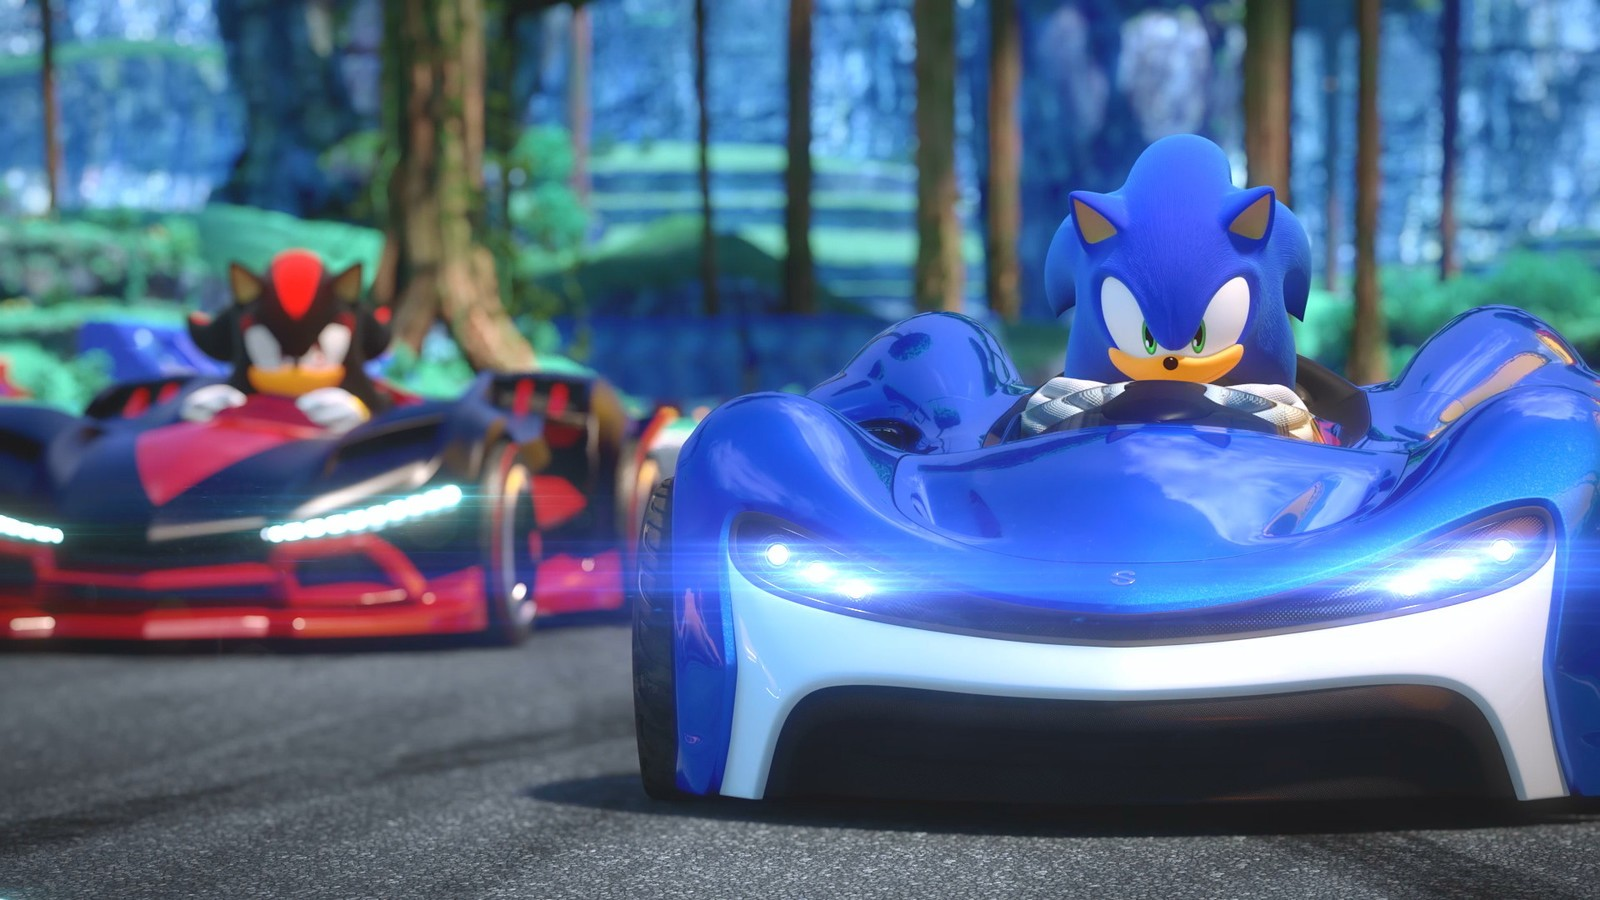 Team Sonic Racing Release Will Happen this here - Here are Some other Perky Details